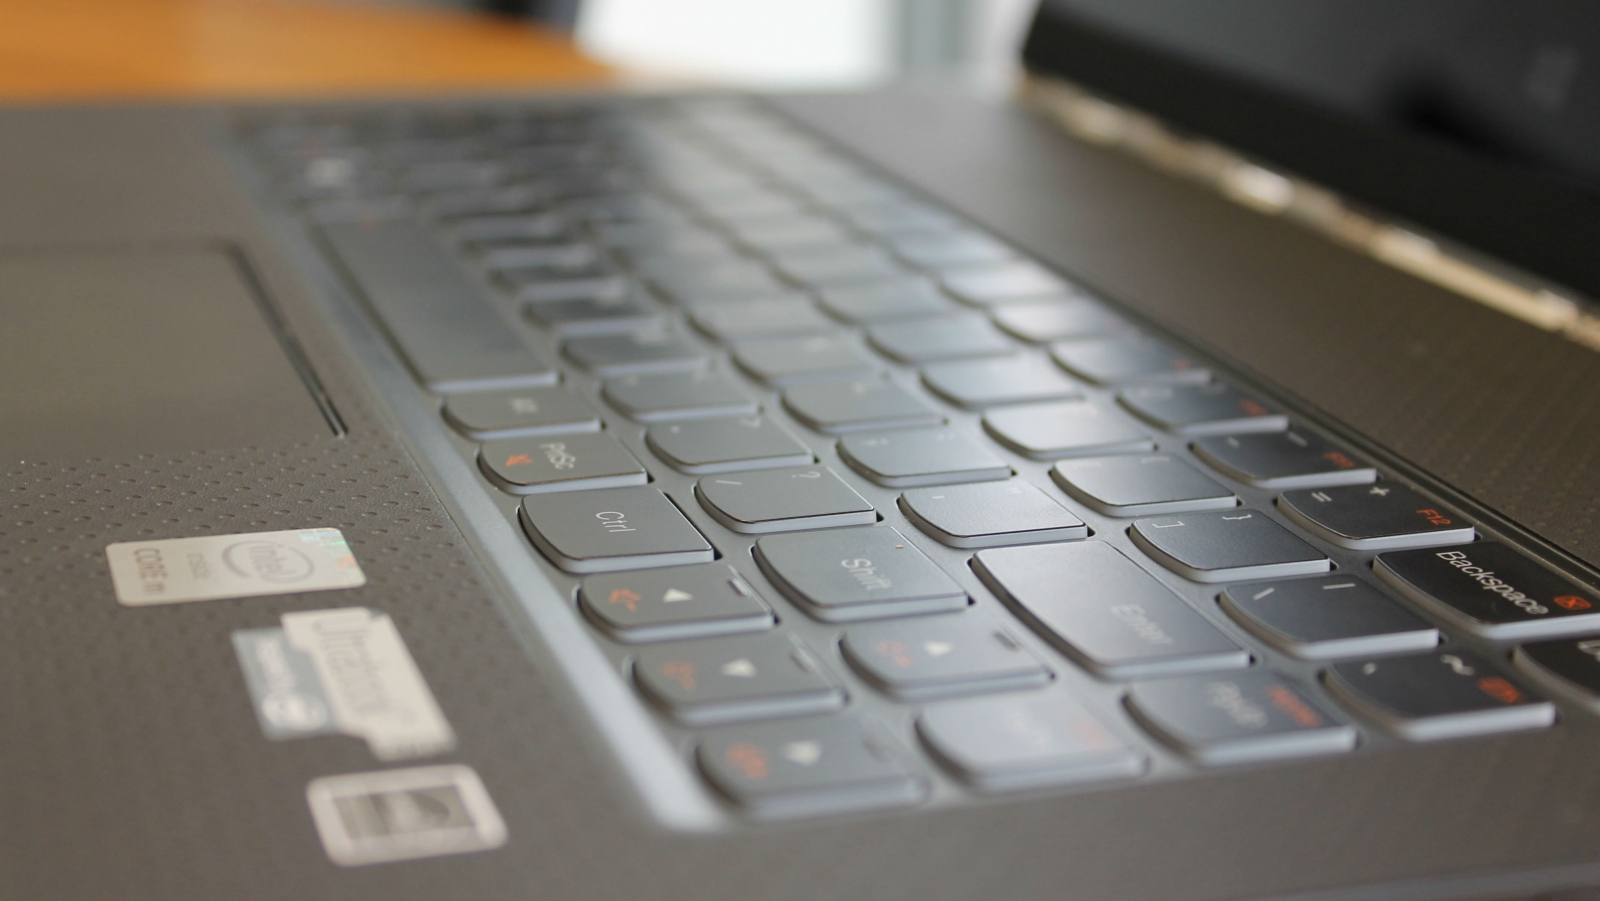 Lenovo Yoga 3 Pro Review keyboard